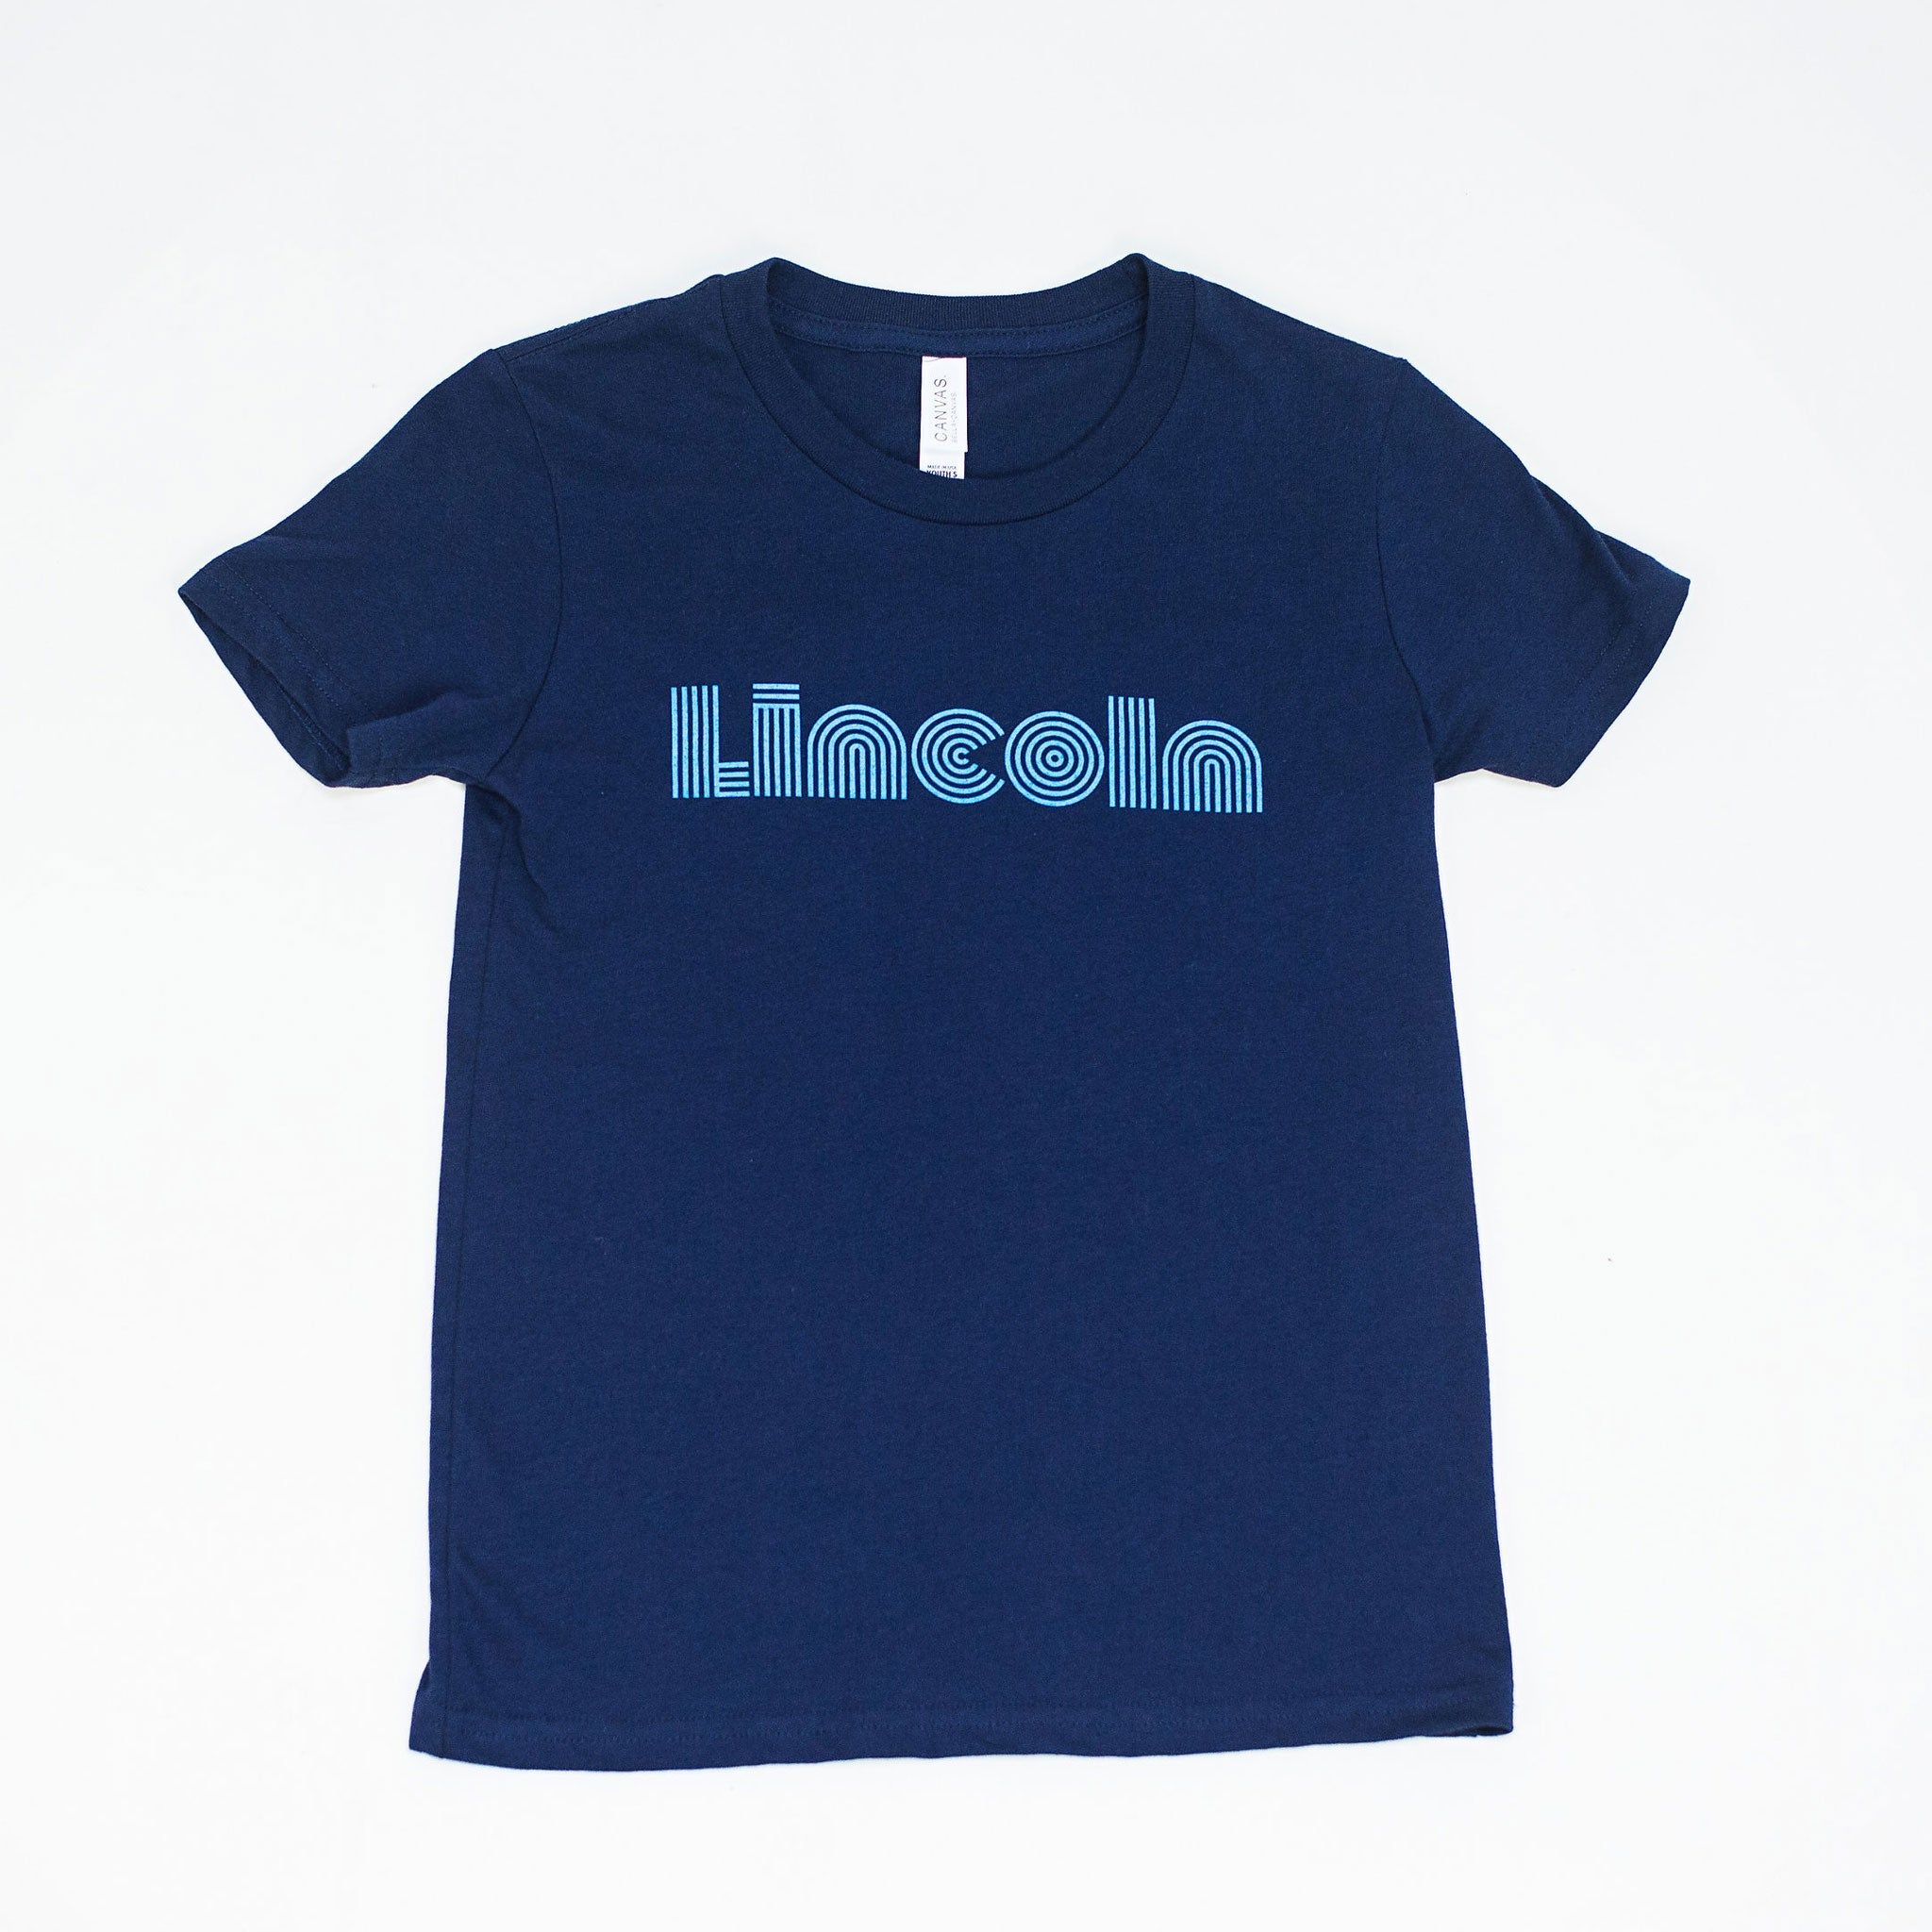 Lincoln Adult S/S Wavy Tee (Navy)